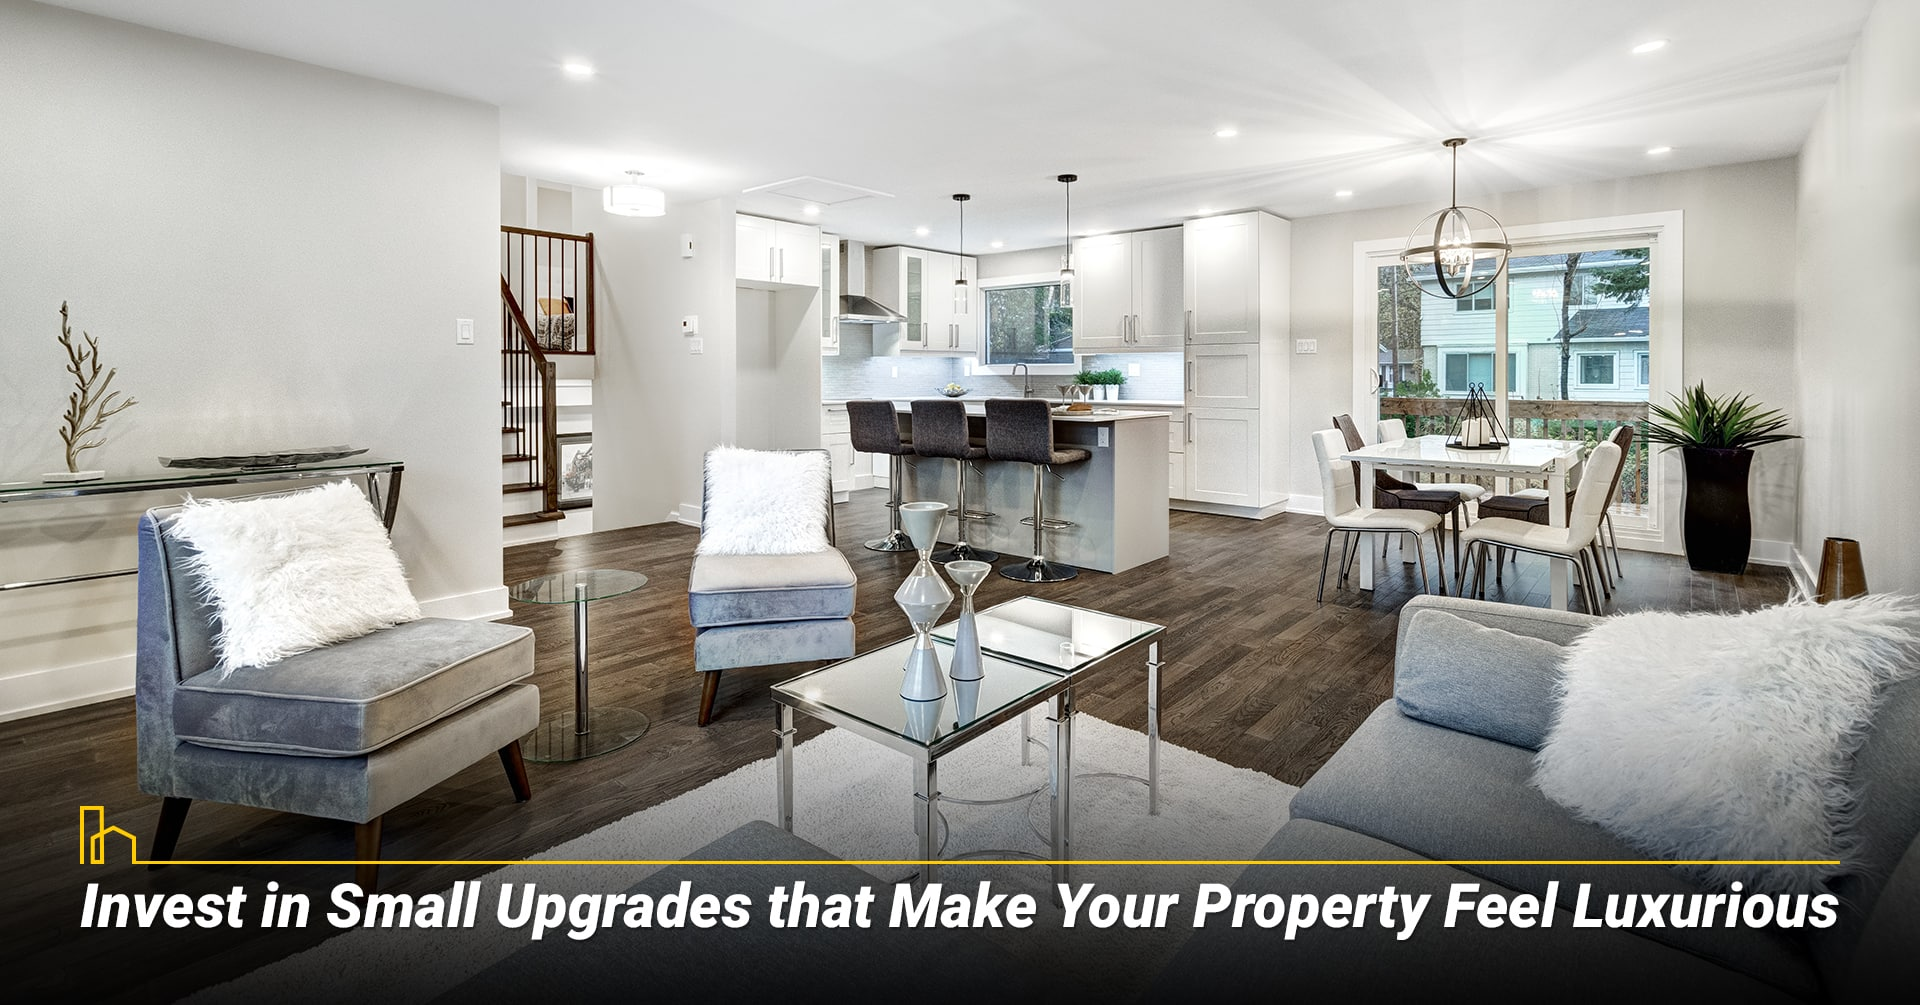 Invest in Small Upgrades that Make Your Property Feel Luxurious, upgrade your property